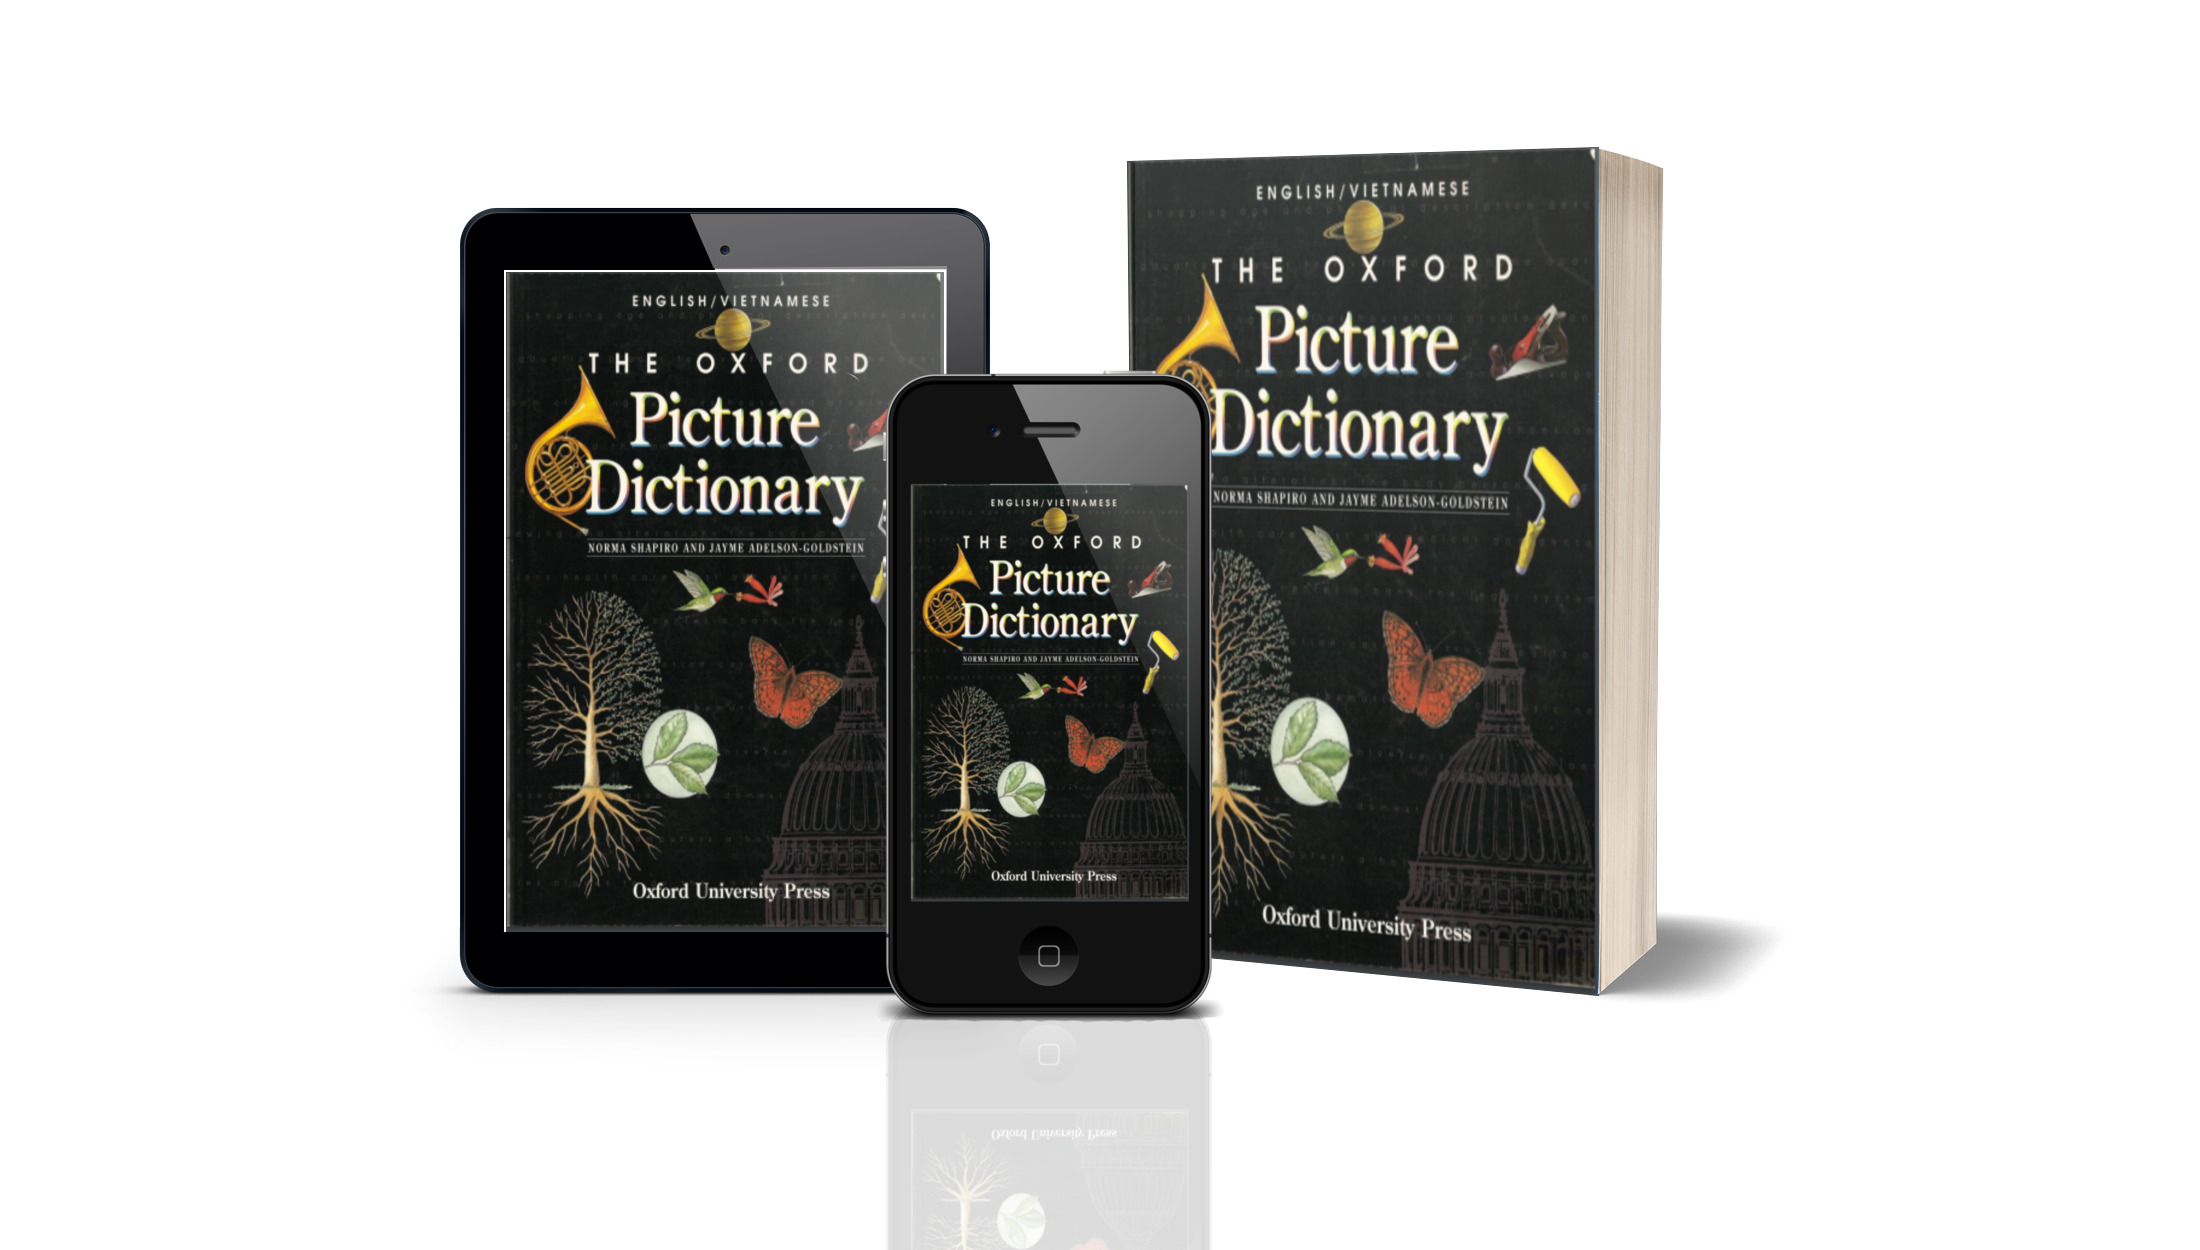 BOOK: THE OXFORD PICTURE DICTIONARY